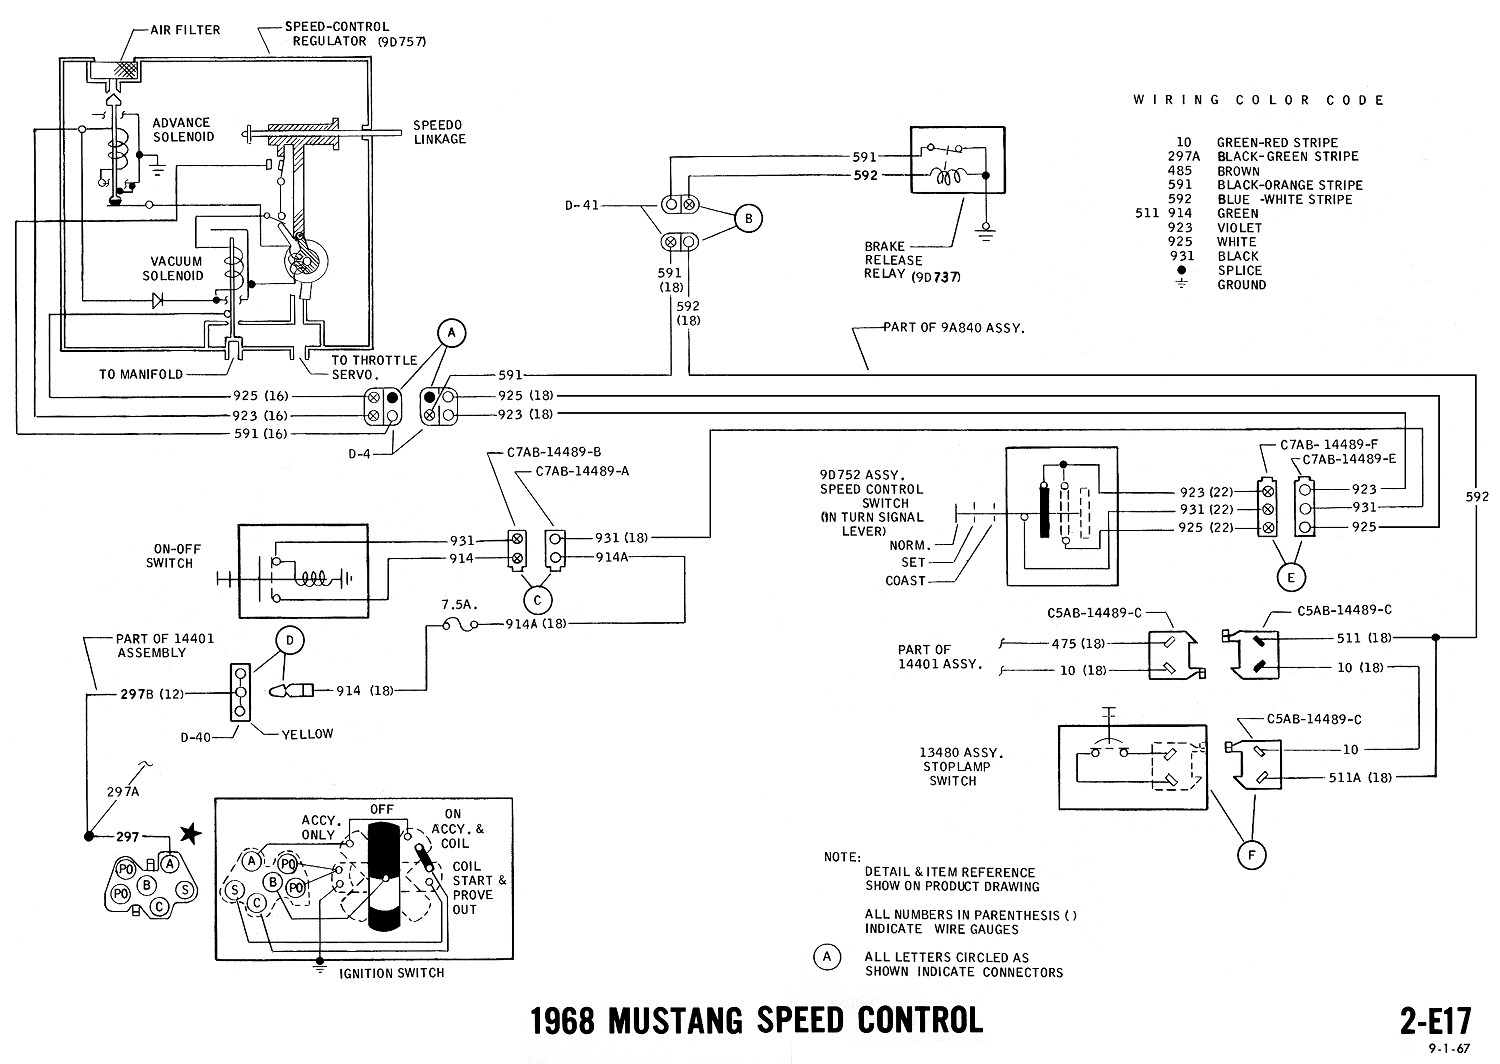 1968 mustang wiring diagrams evolving on 69 chevelle dome light wiring diagram  [ 1500 x 1064 Pixel ]